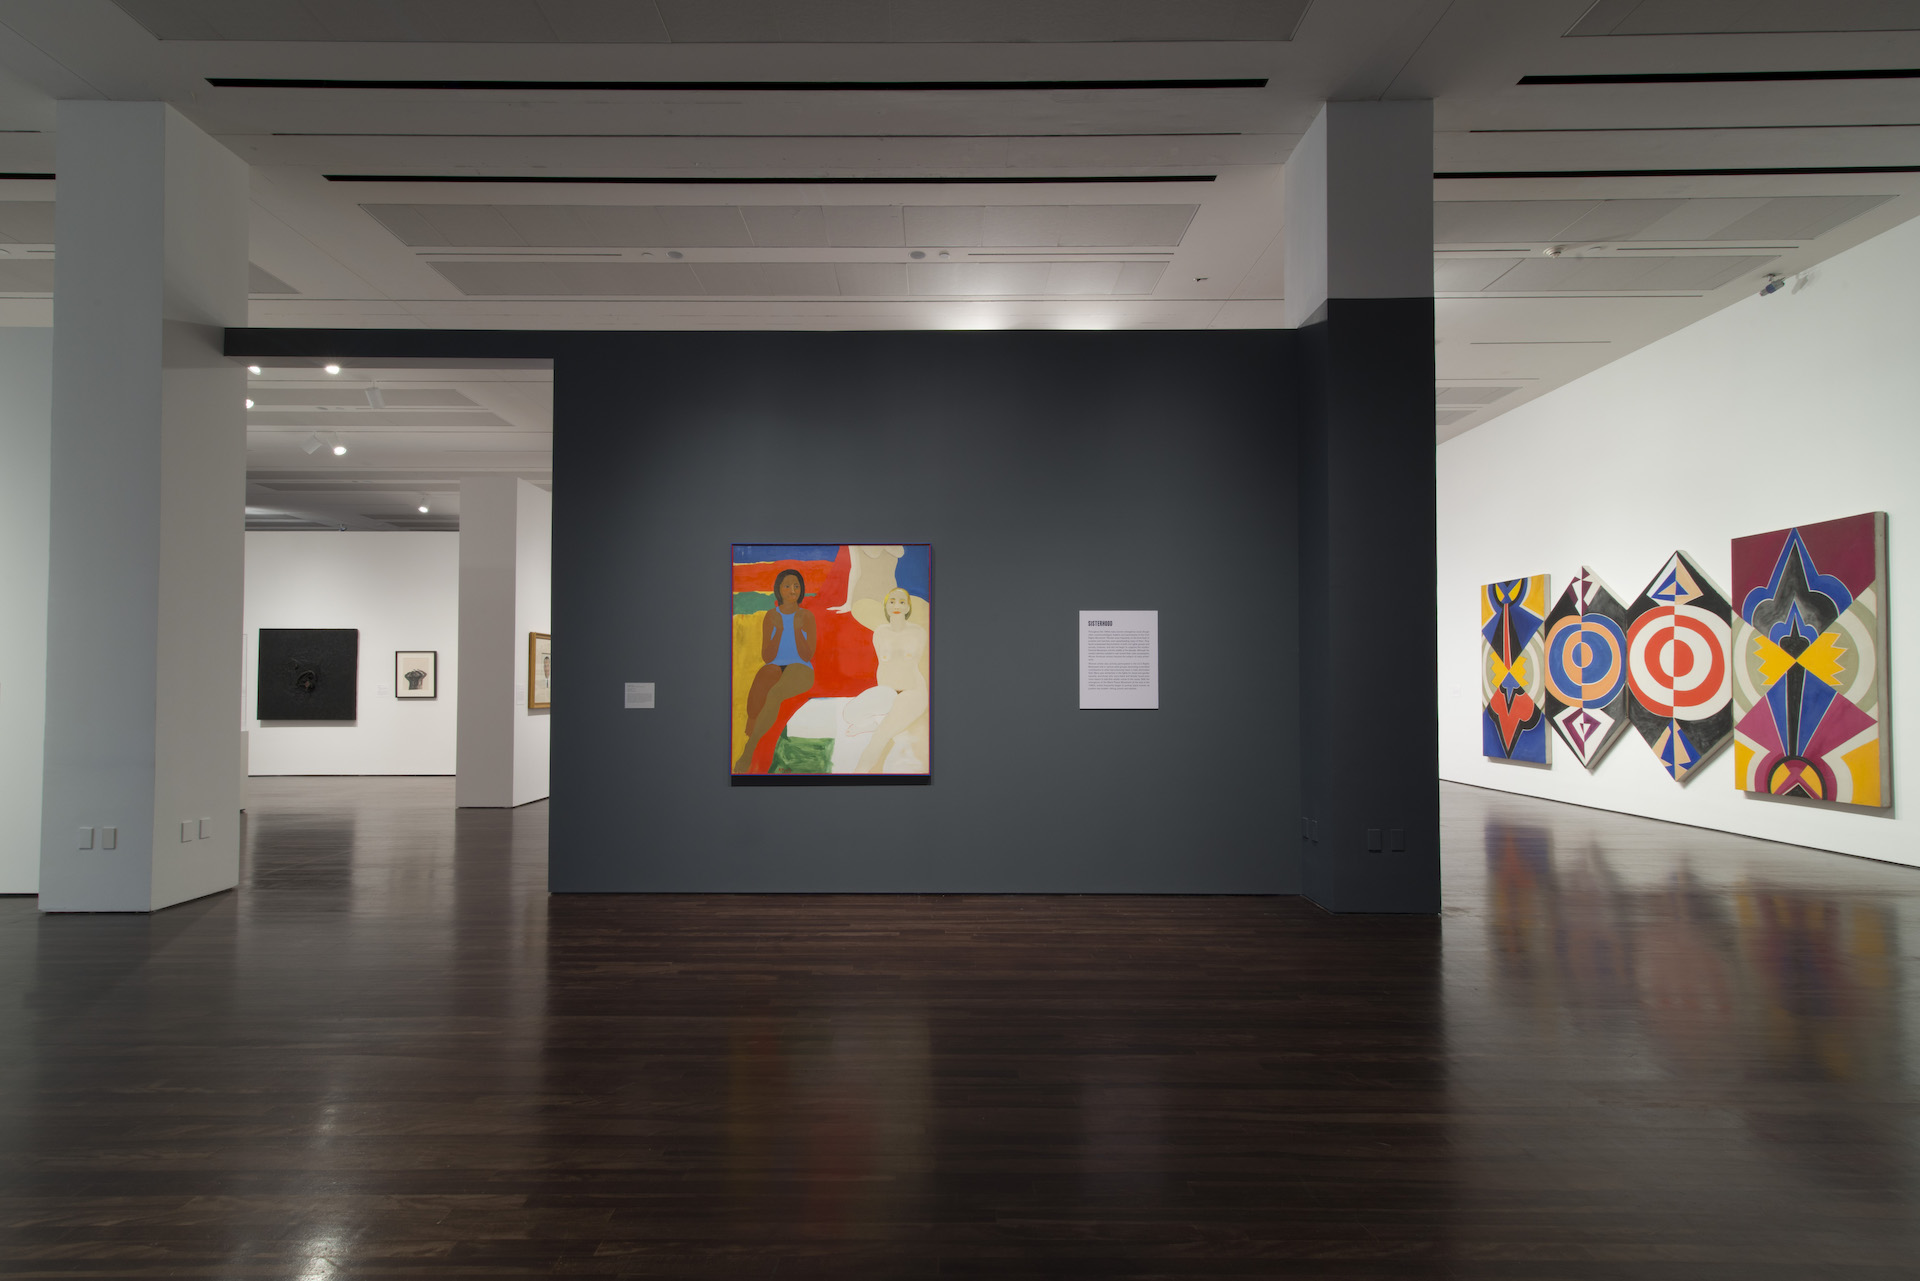 """Installation view of """"Witness: Art and Civil Rights in the Sixties"""" at theBlanton Museum of Art. A grey wall displays a painting featuring nude women. To the right of the wall hangs a painting featuring bold colors and linework."""